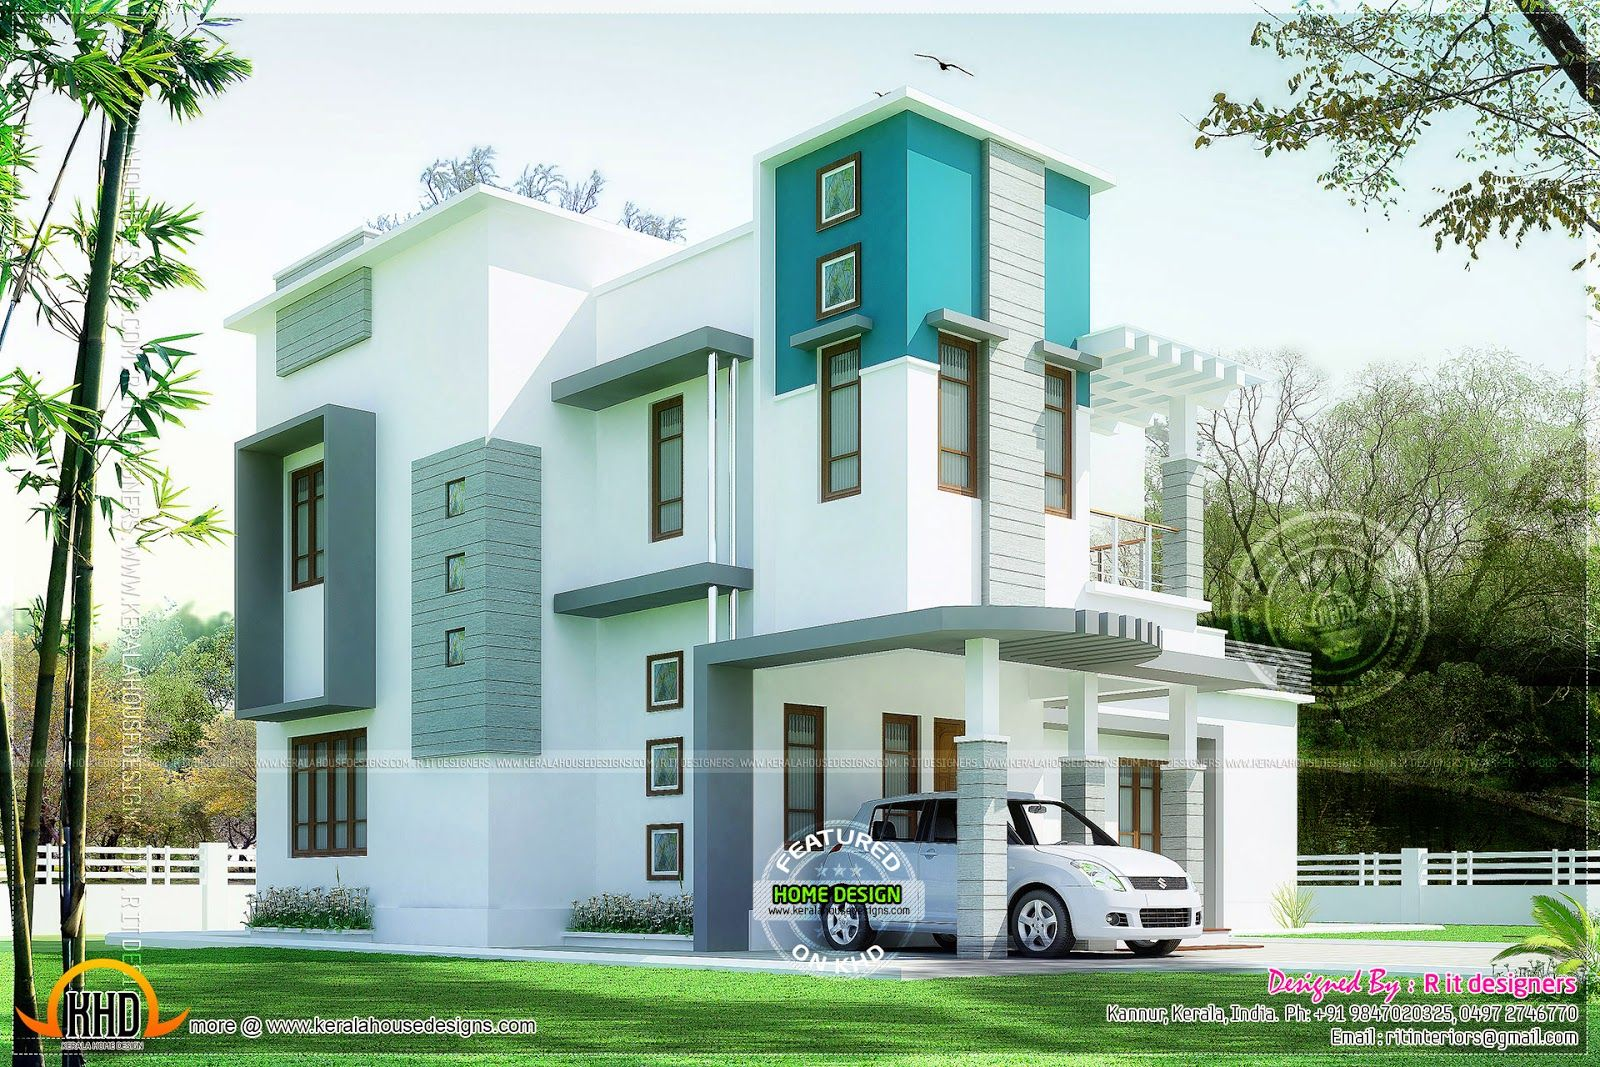 Home design picturesque beautiful modern houses pictures indian kerala house india also cute rh pinterest